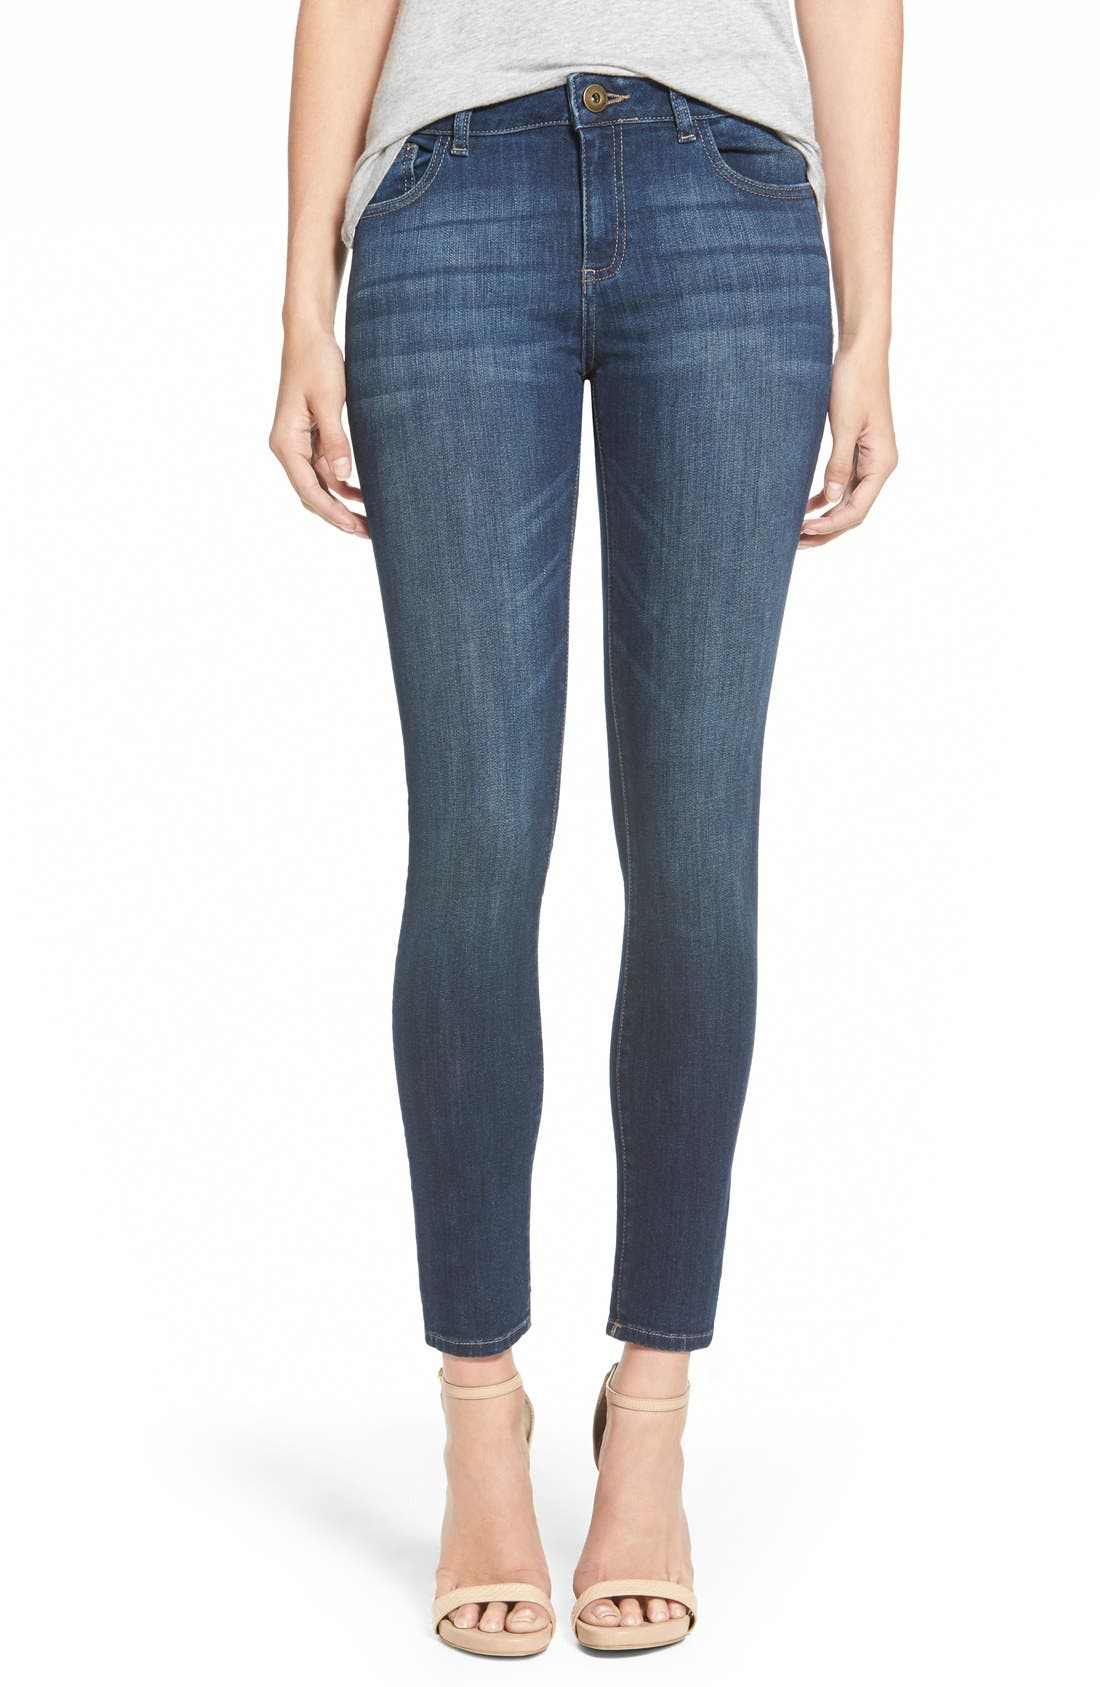 Main Image - DL1961 'Margaux' Instasculpt Ankle Skinny Jeans (Winter)